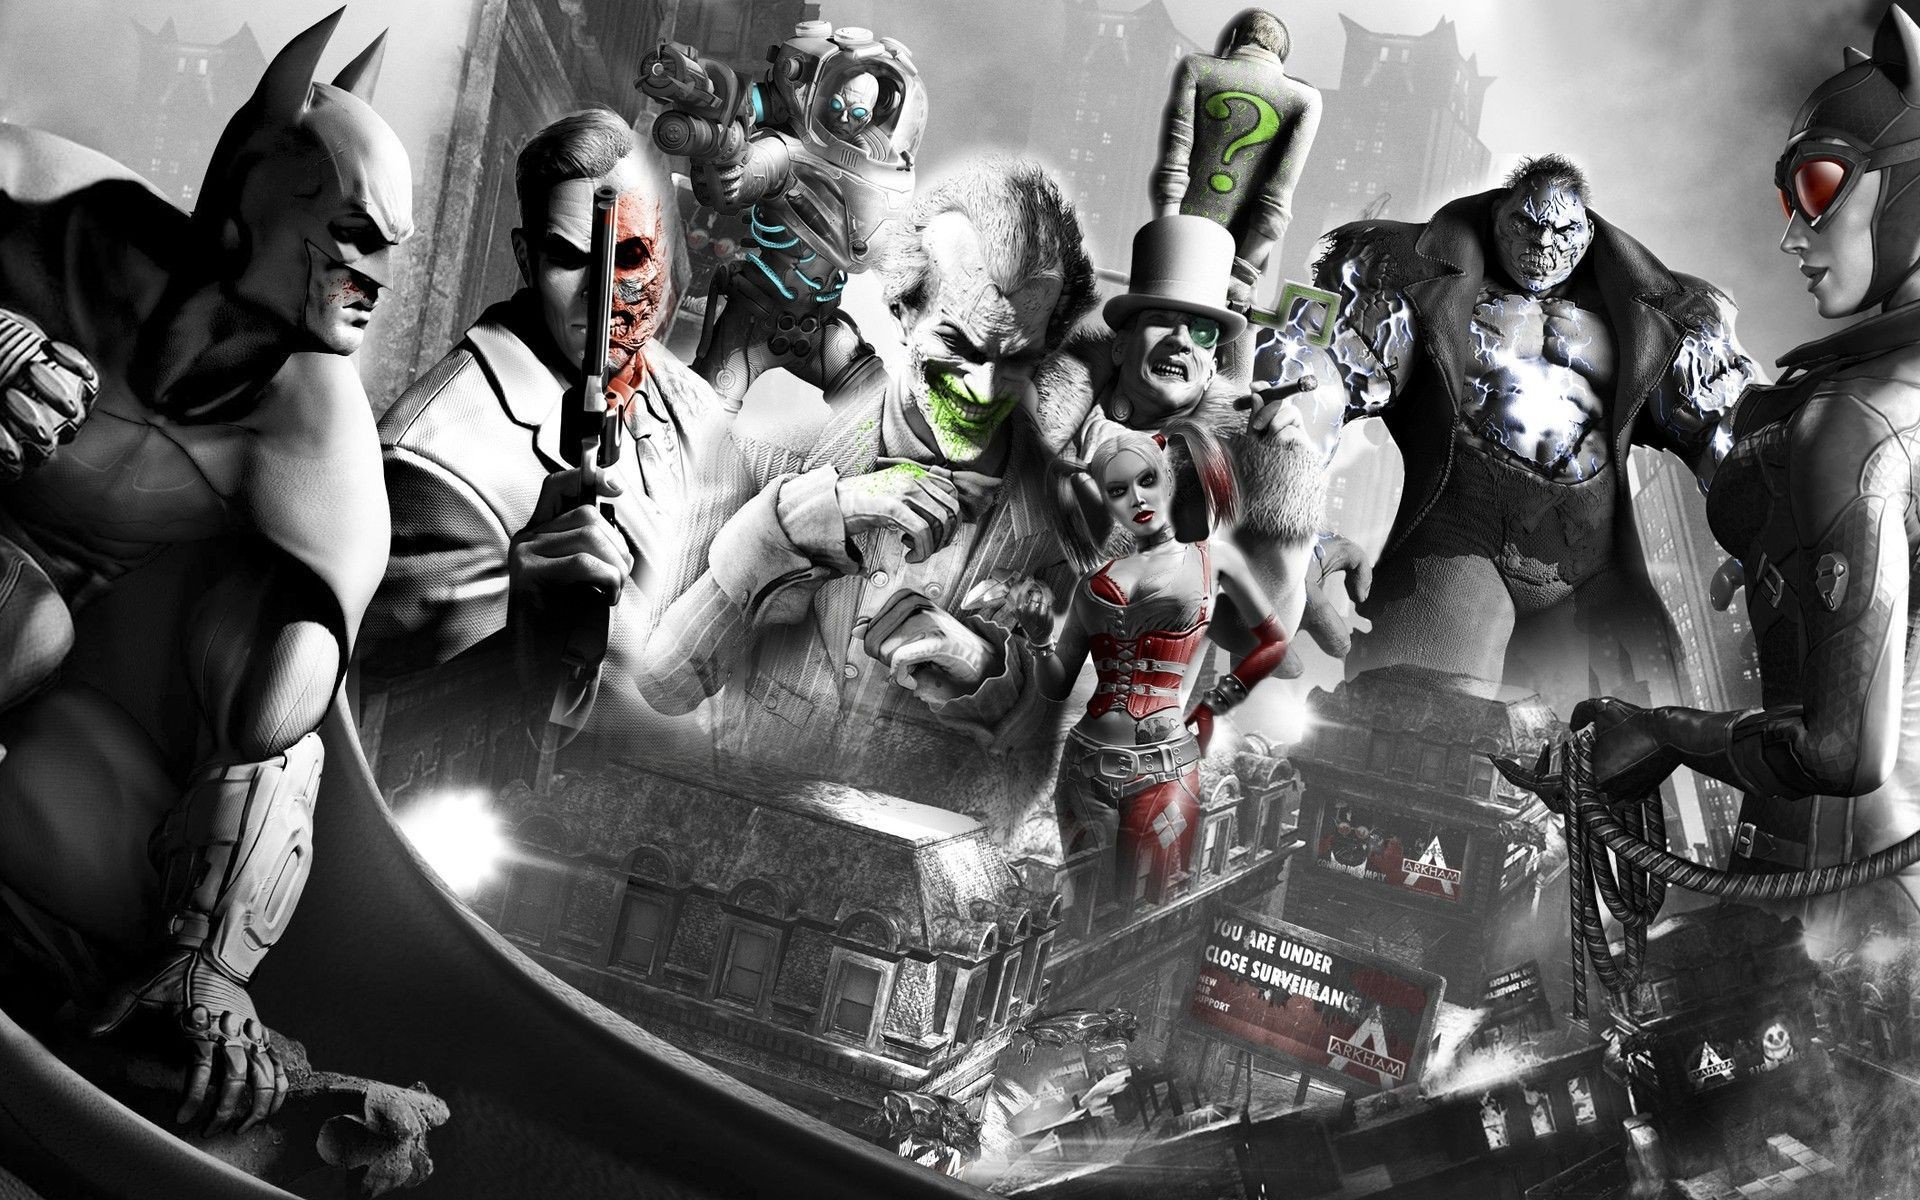 Res: 1920x1200, Collection of Batman Villains Wallpaper, M.F. Wallpapers